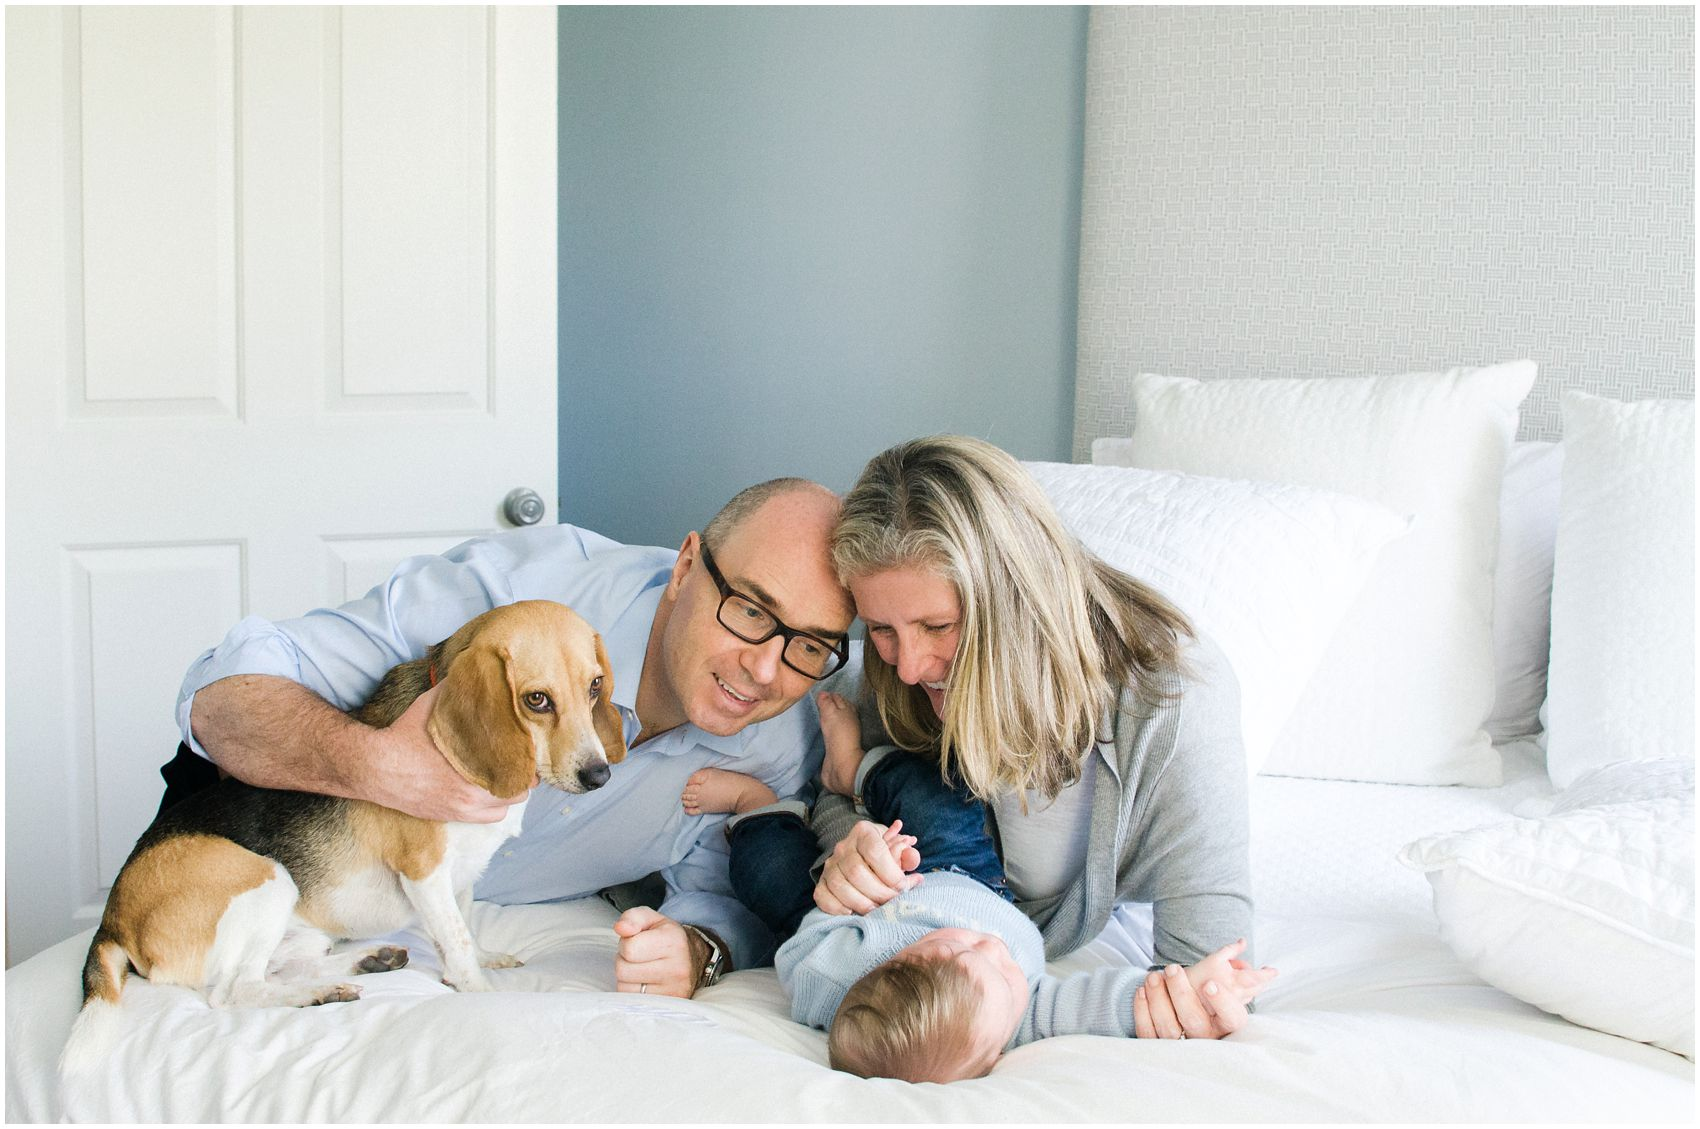 at home family portrait on bed of mom, dad, son and family dog